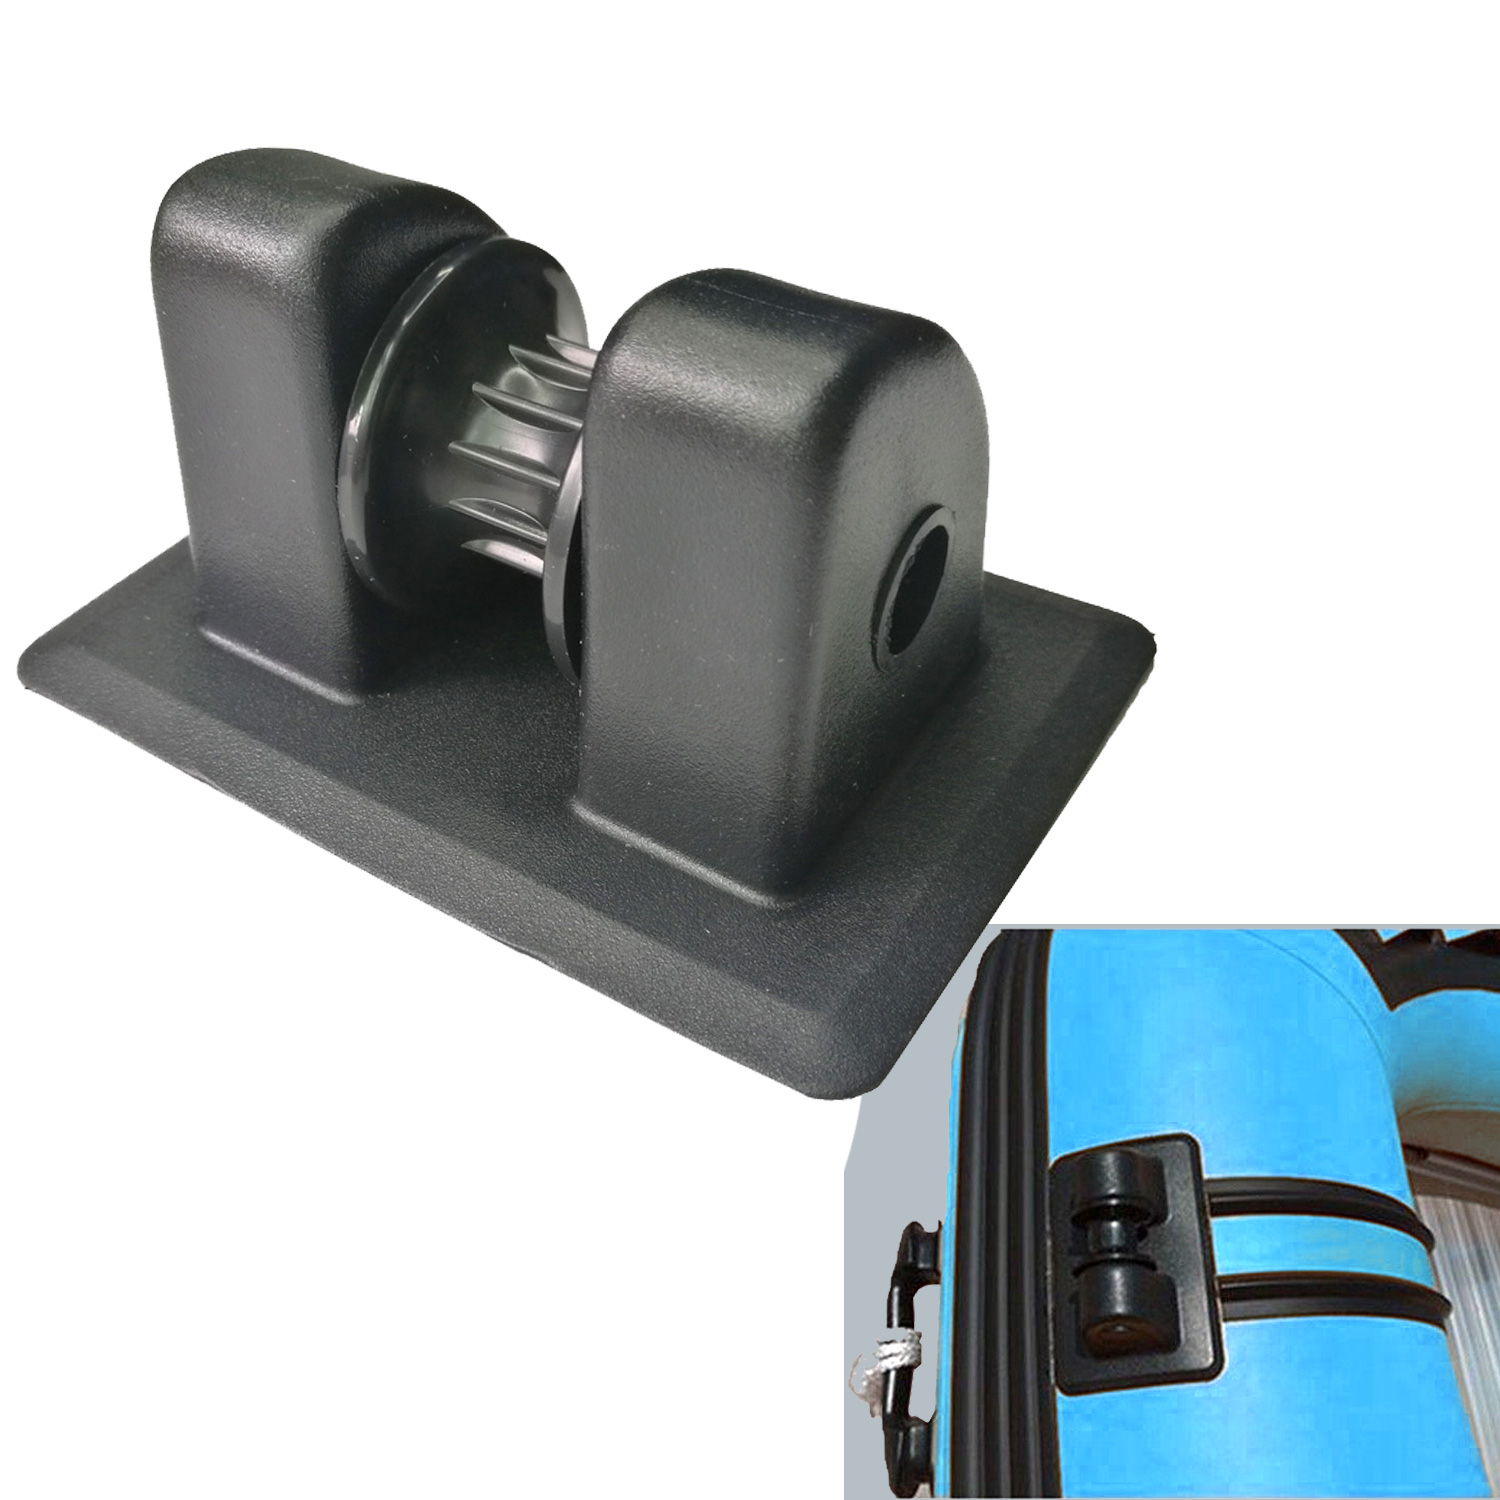 1PC Kayak Inflatable Boat Anchor Rope Buckle Holder Anchor PVC Tie Off Patch Wheel Anchor Row Roller For Rowing Boat Kayak